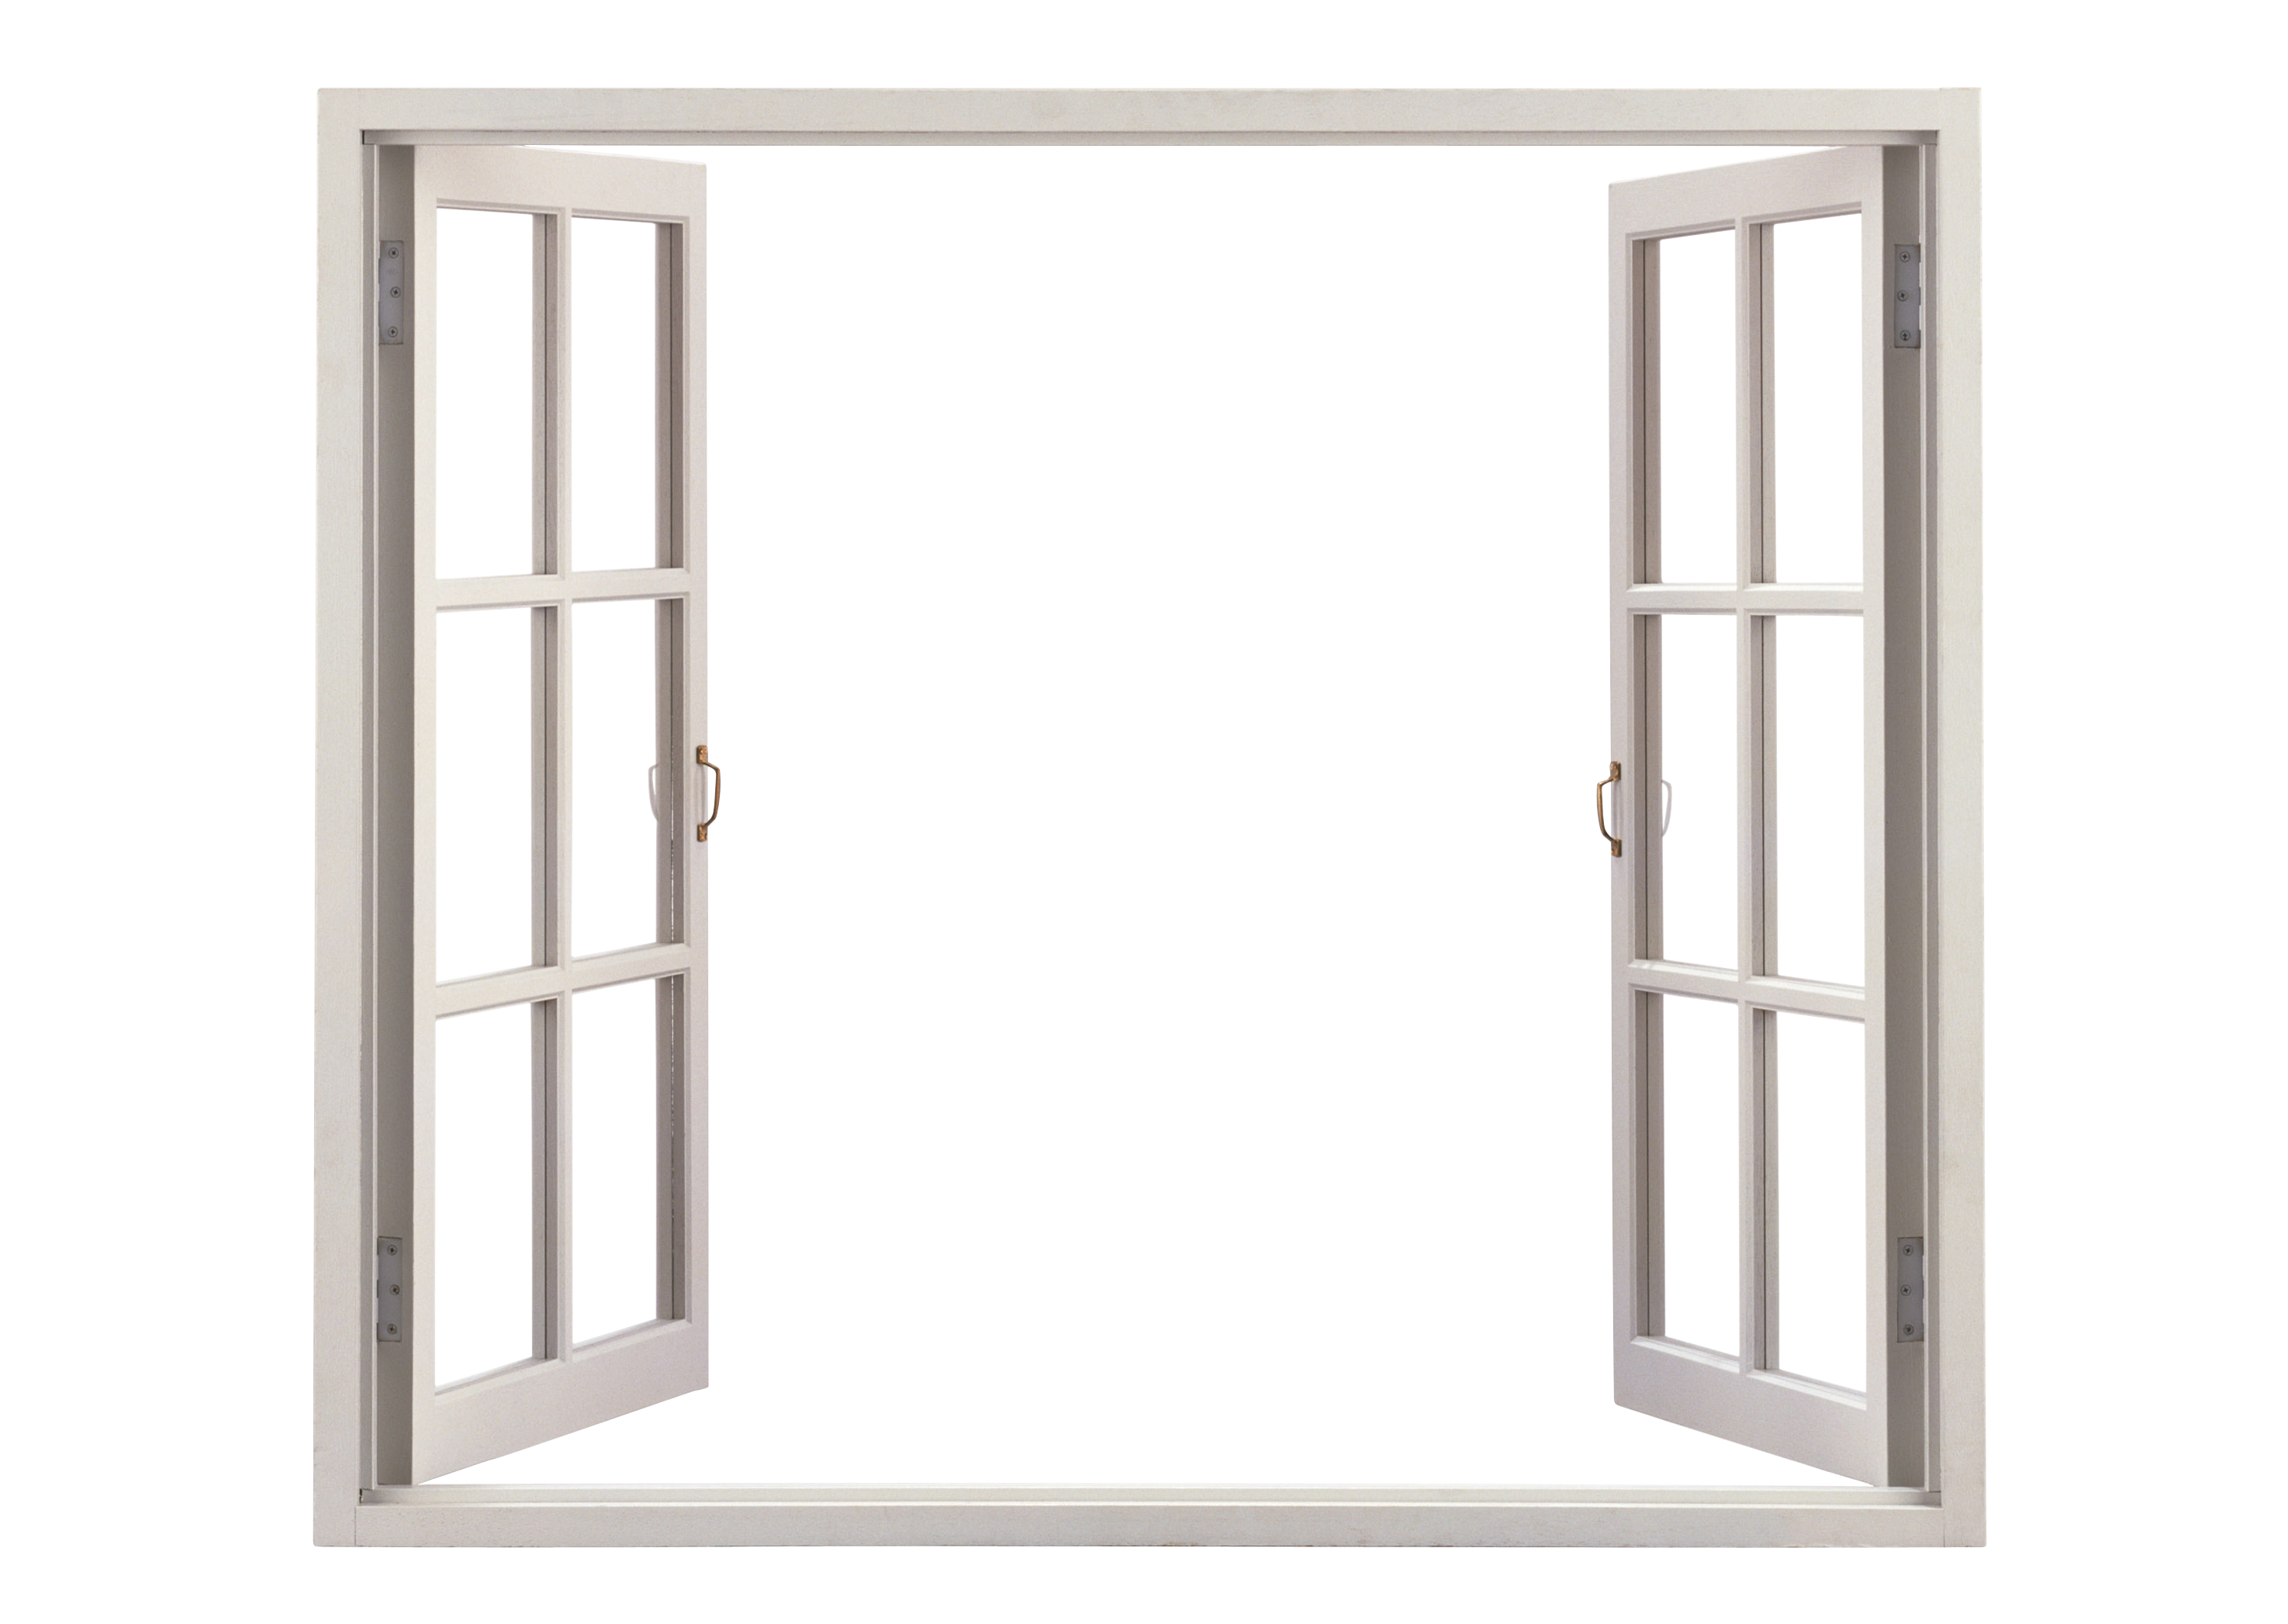 Window transparent PNG by AbsurdWordPreferred